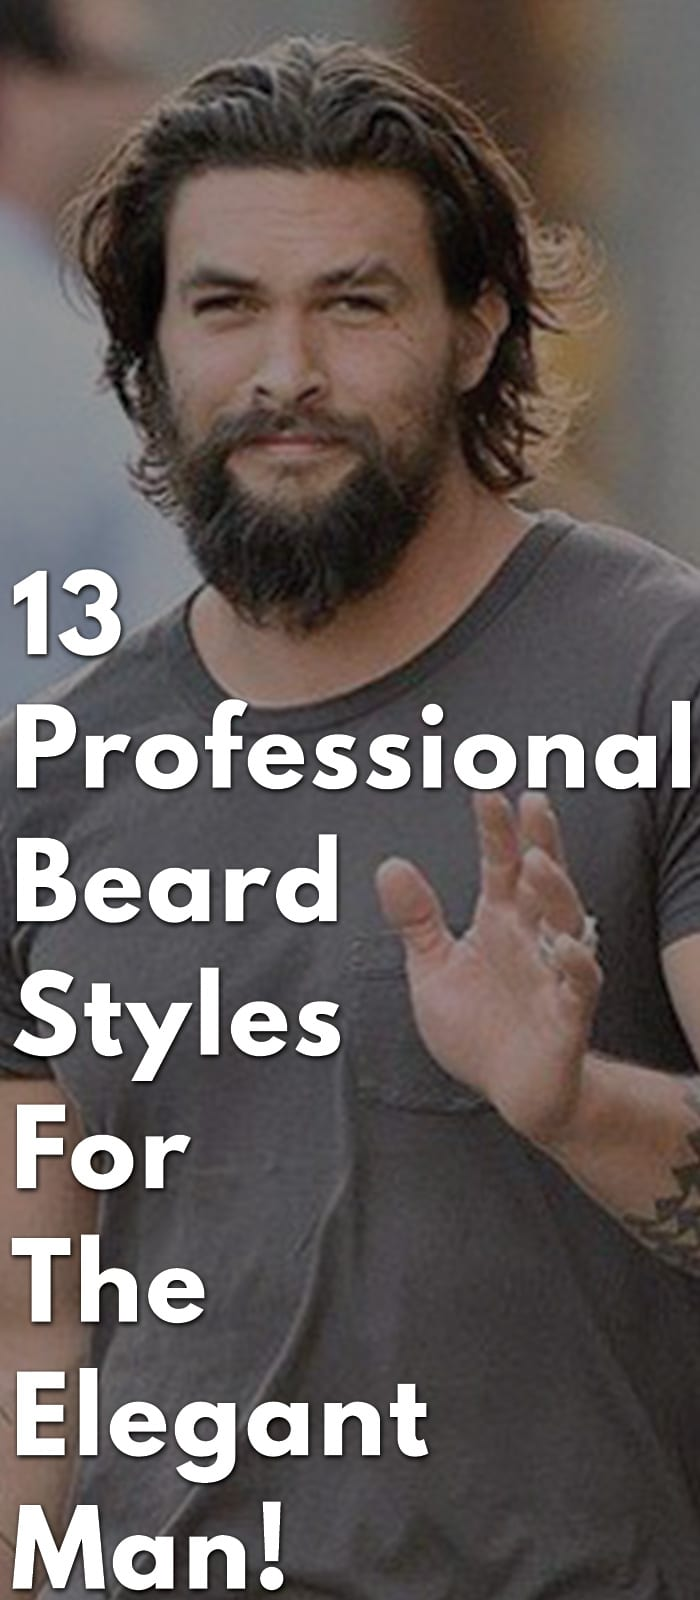 13-Professional-Beard-Styles-For-The-Elegant-Man!.